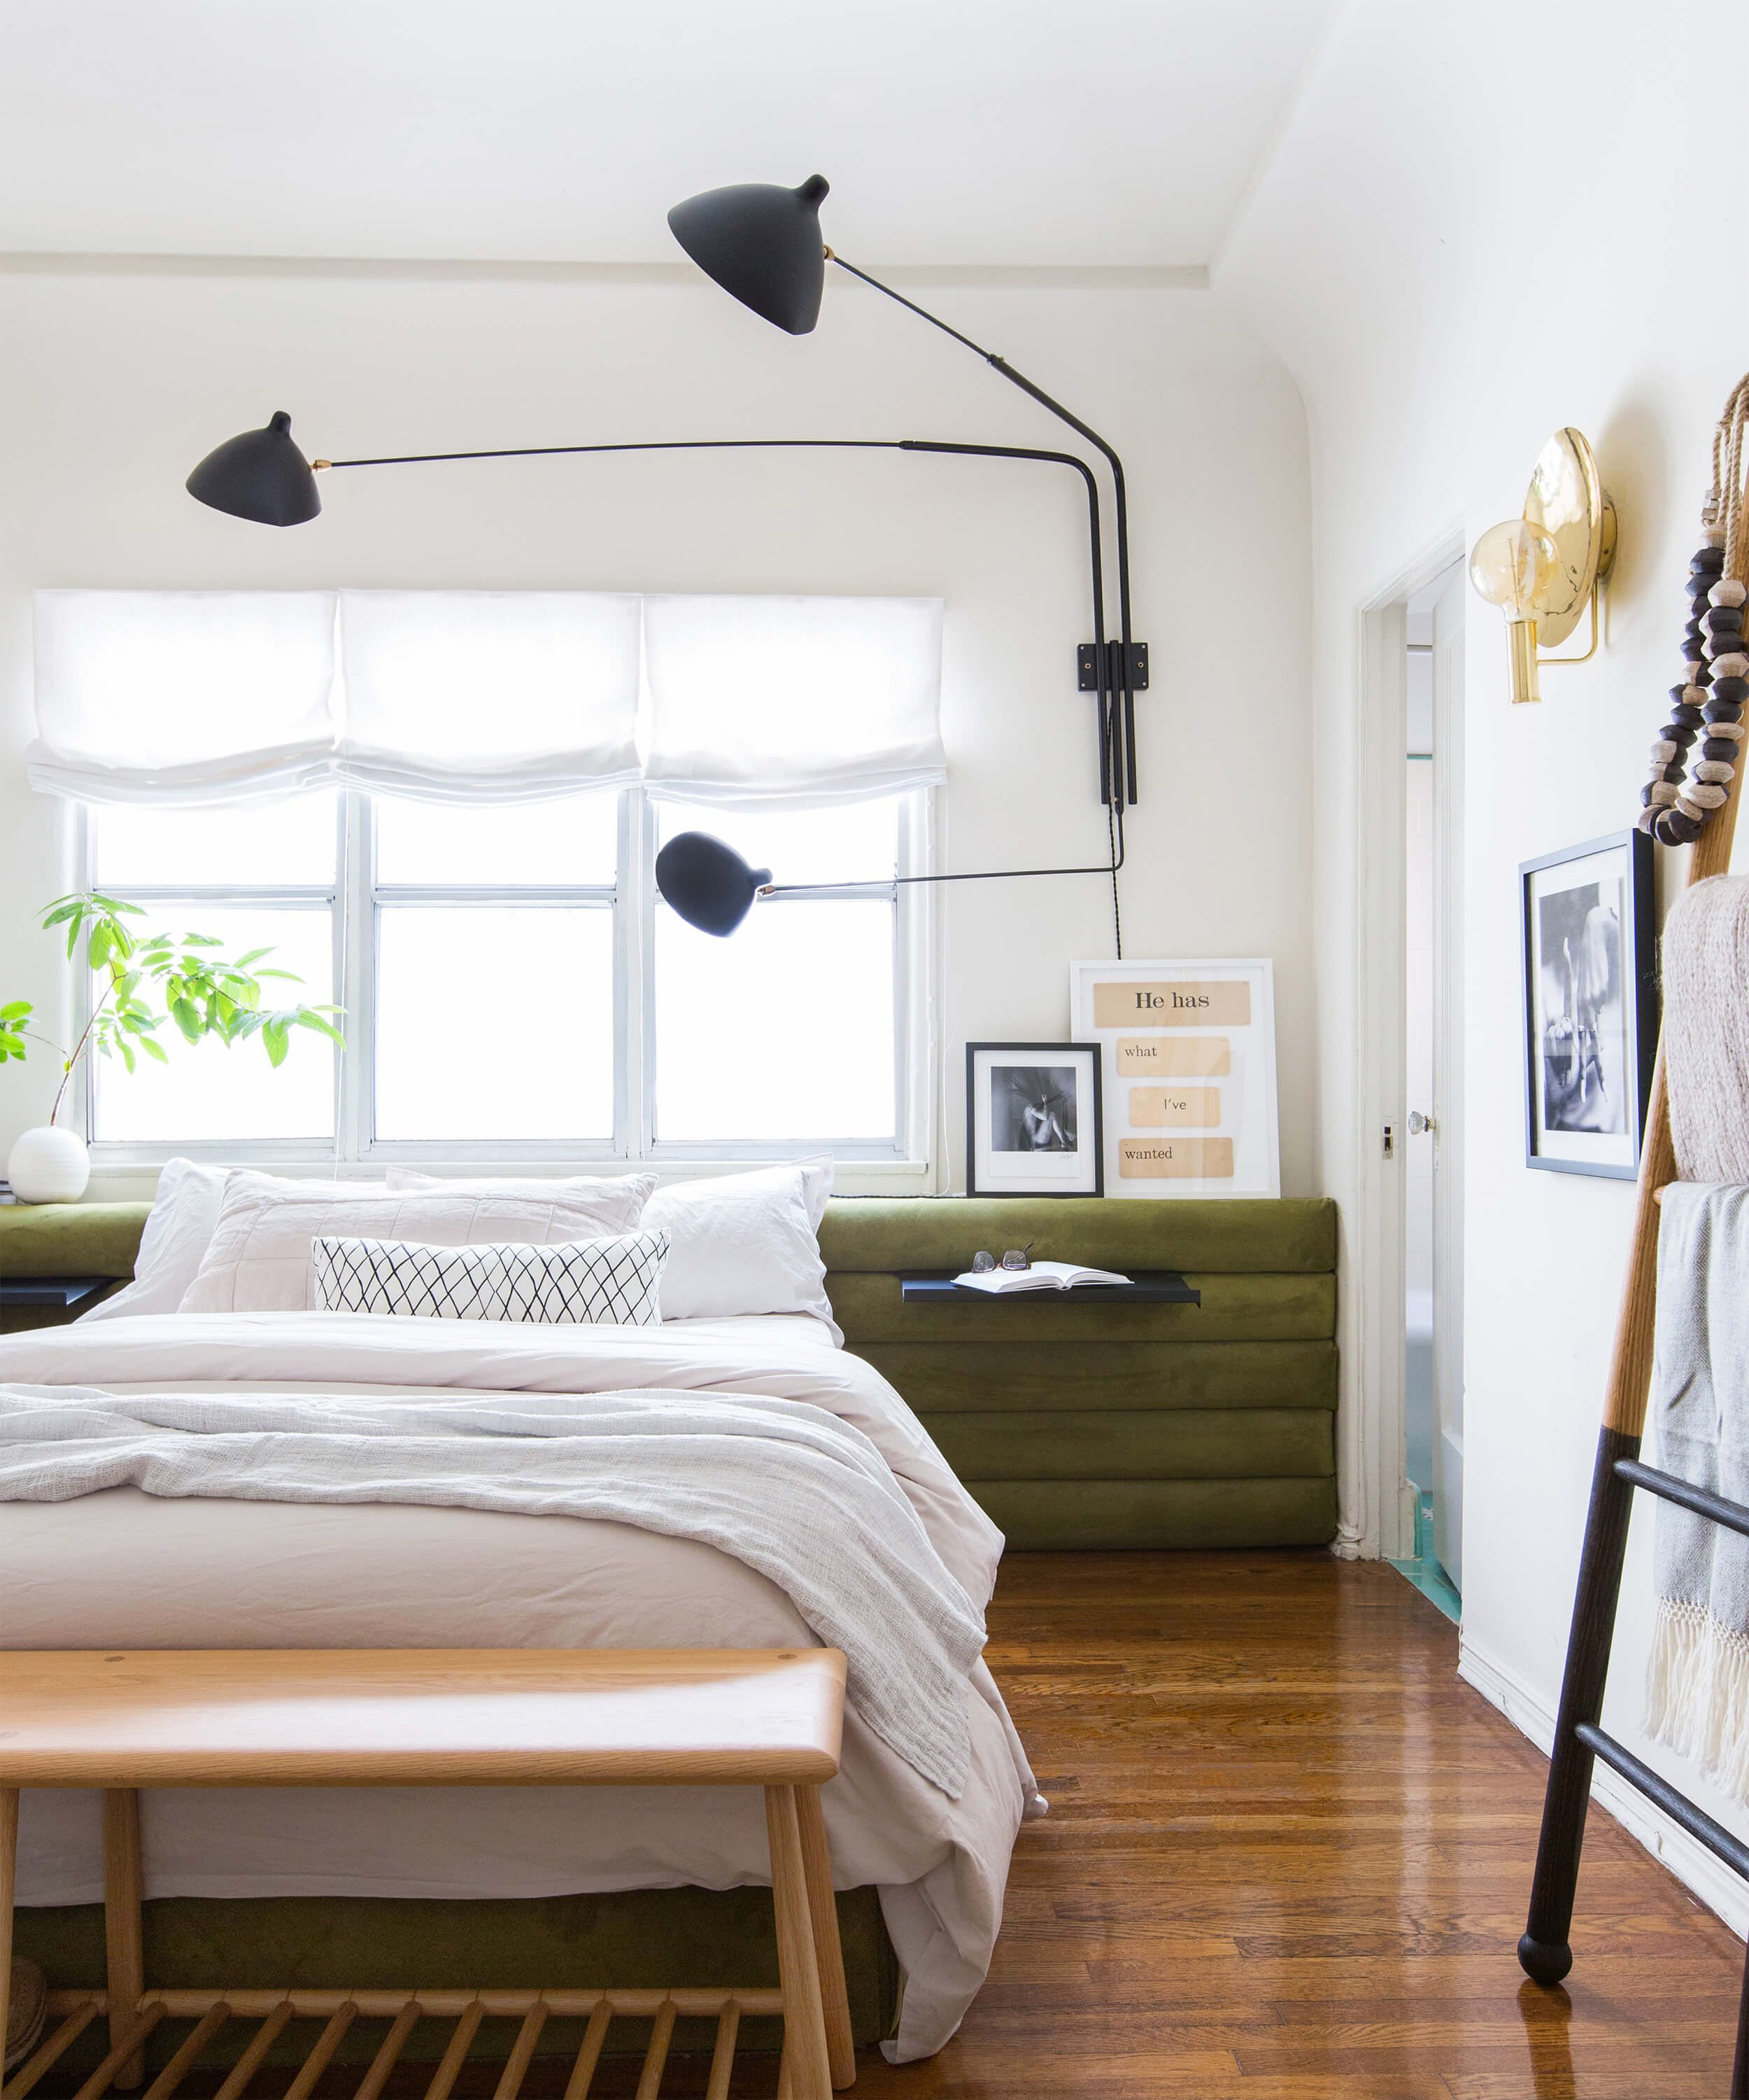 linen duvet cover parachutes bedrooms and diy headboards